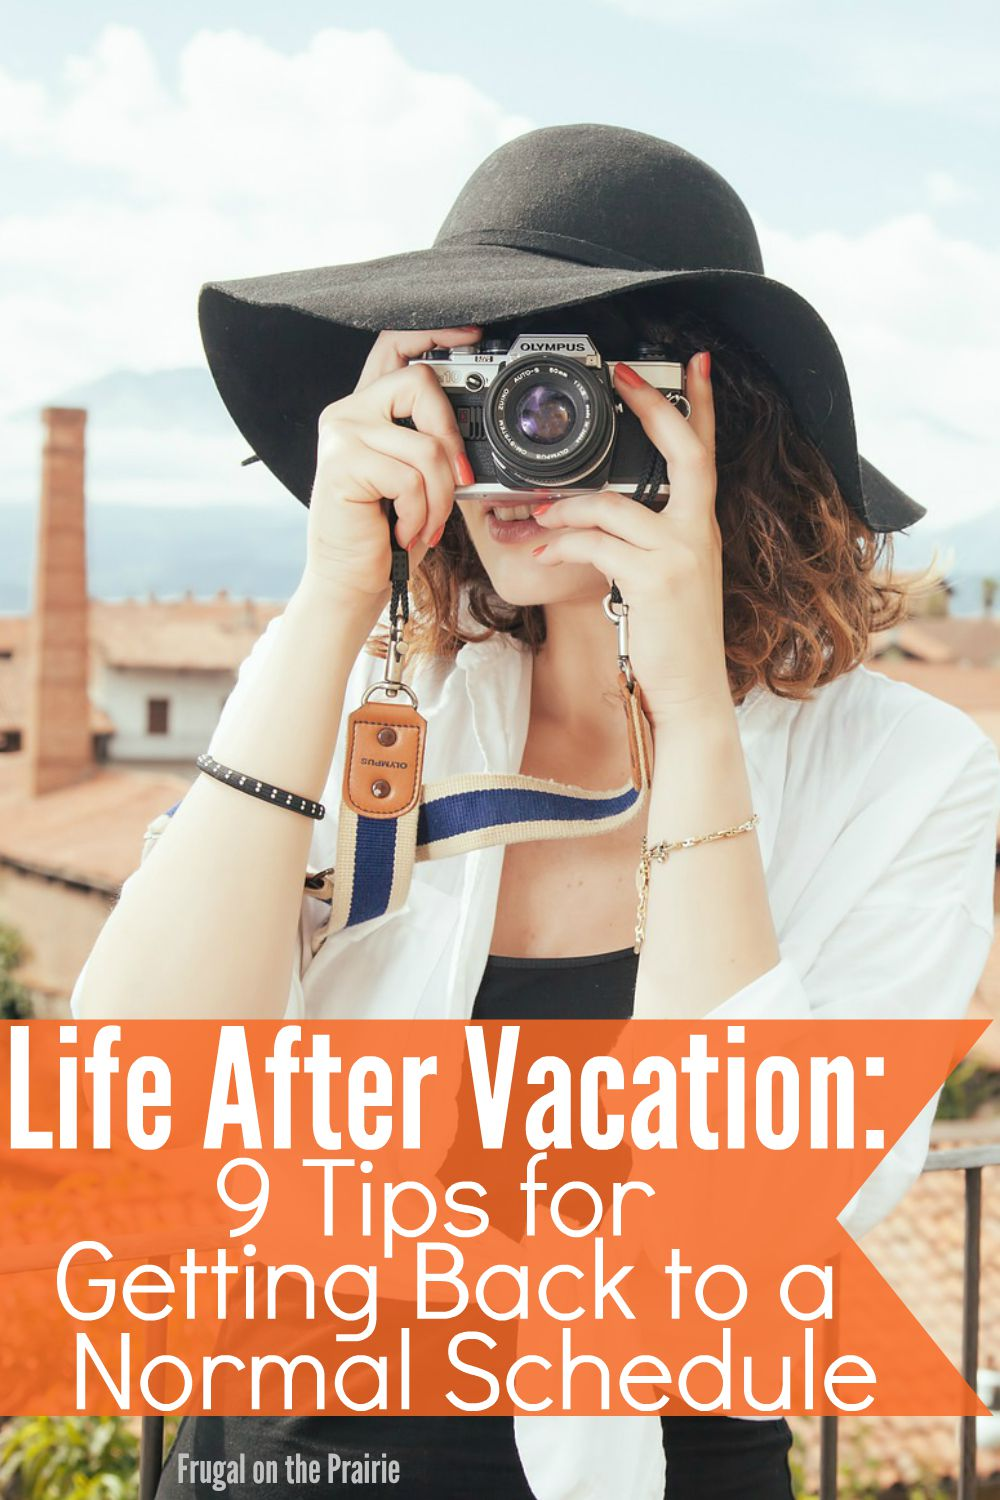 If you've ever gone on vacation, then you know how hard it is getting back to a normal schedule. Here are 9 tips I'll be using to jump out of vacation mode.